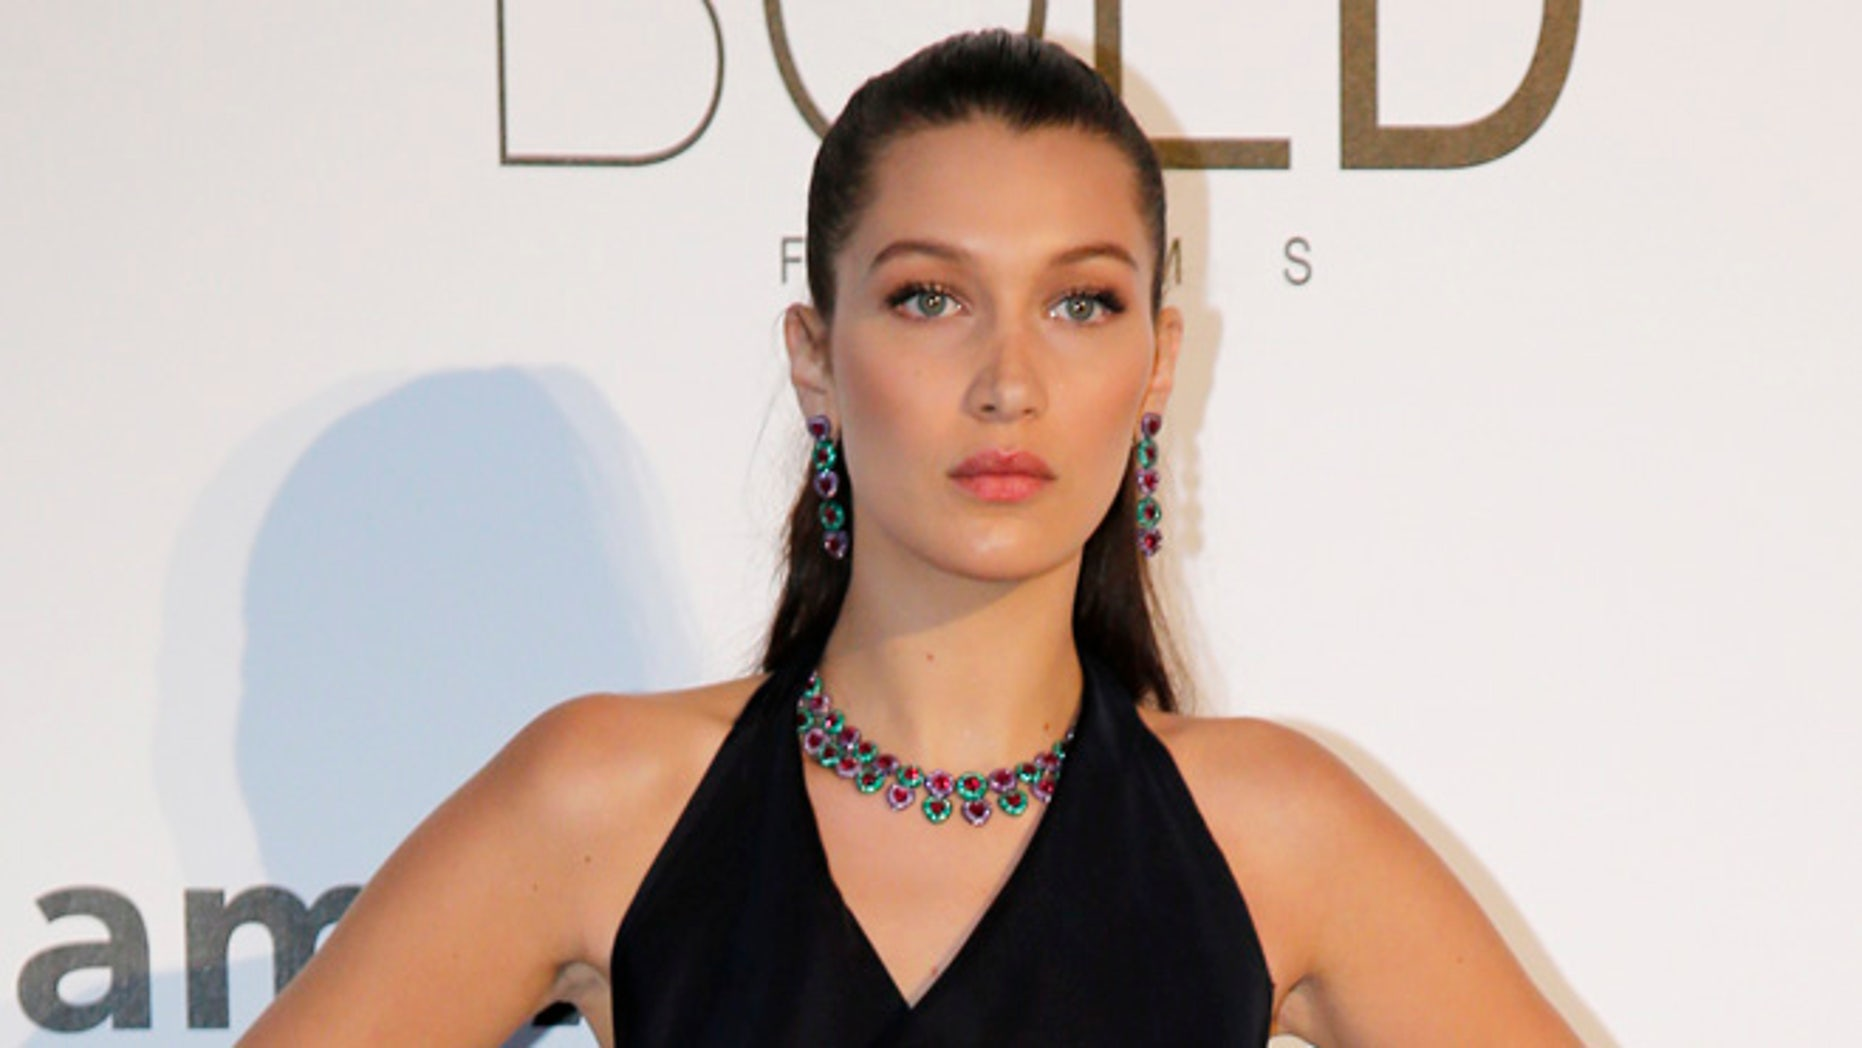 Model Bella Hadid opened up about her struggle with Lyme disease.